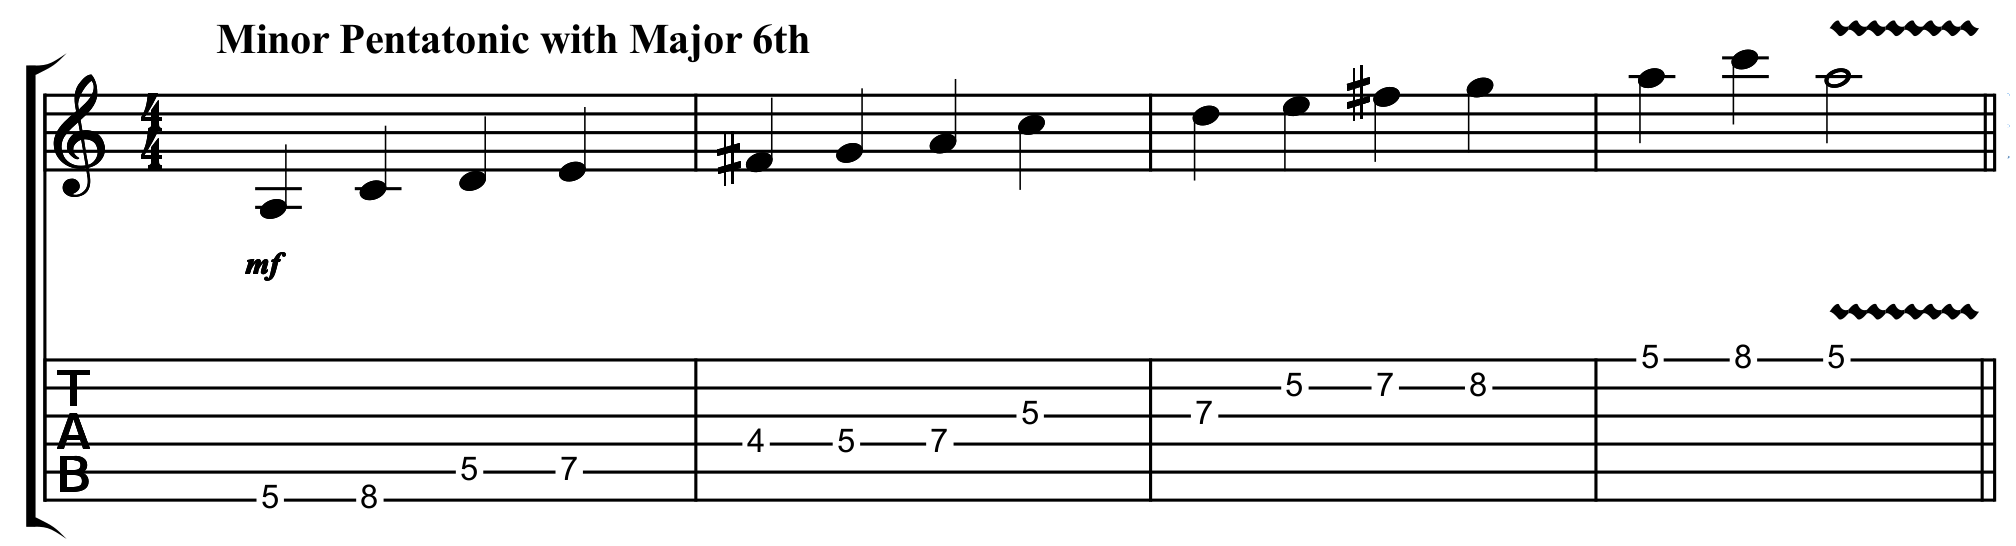 guitar tab for the A minor pentatonic scale with a Dorian modal flavour